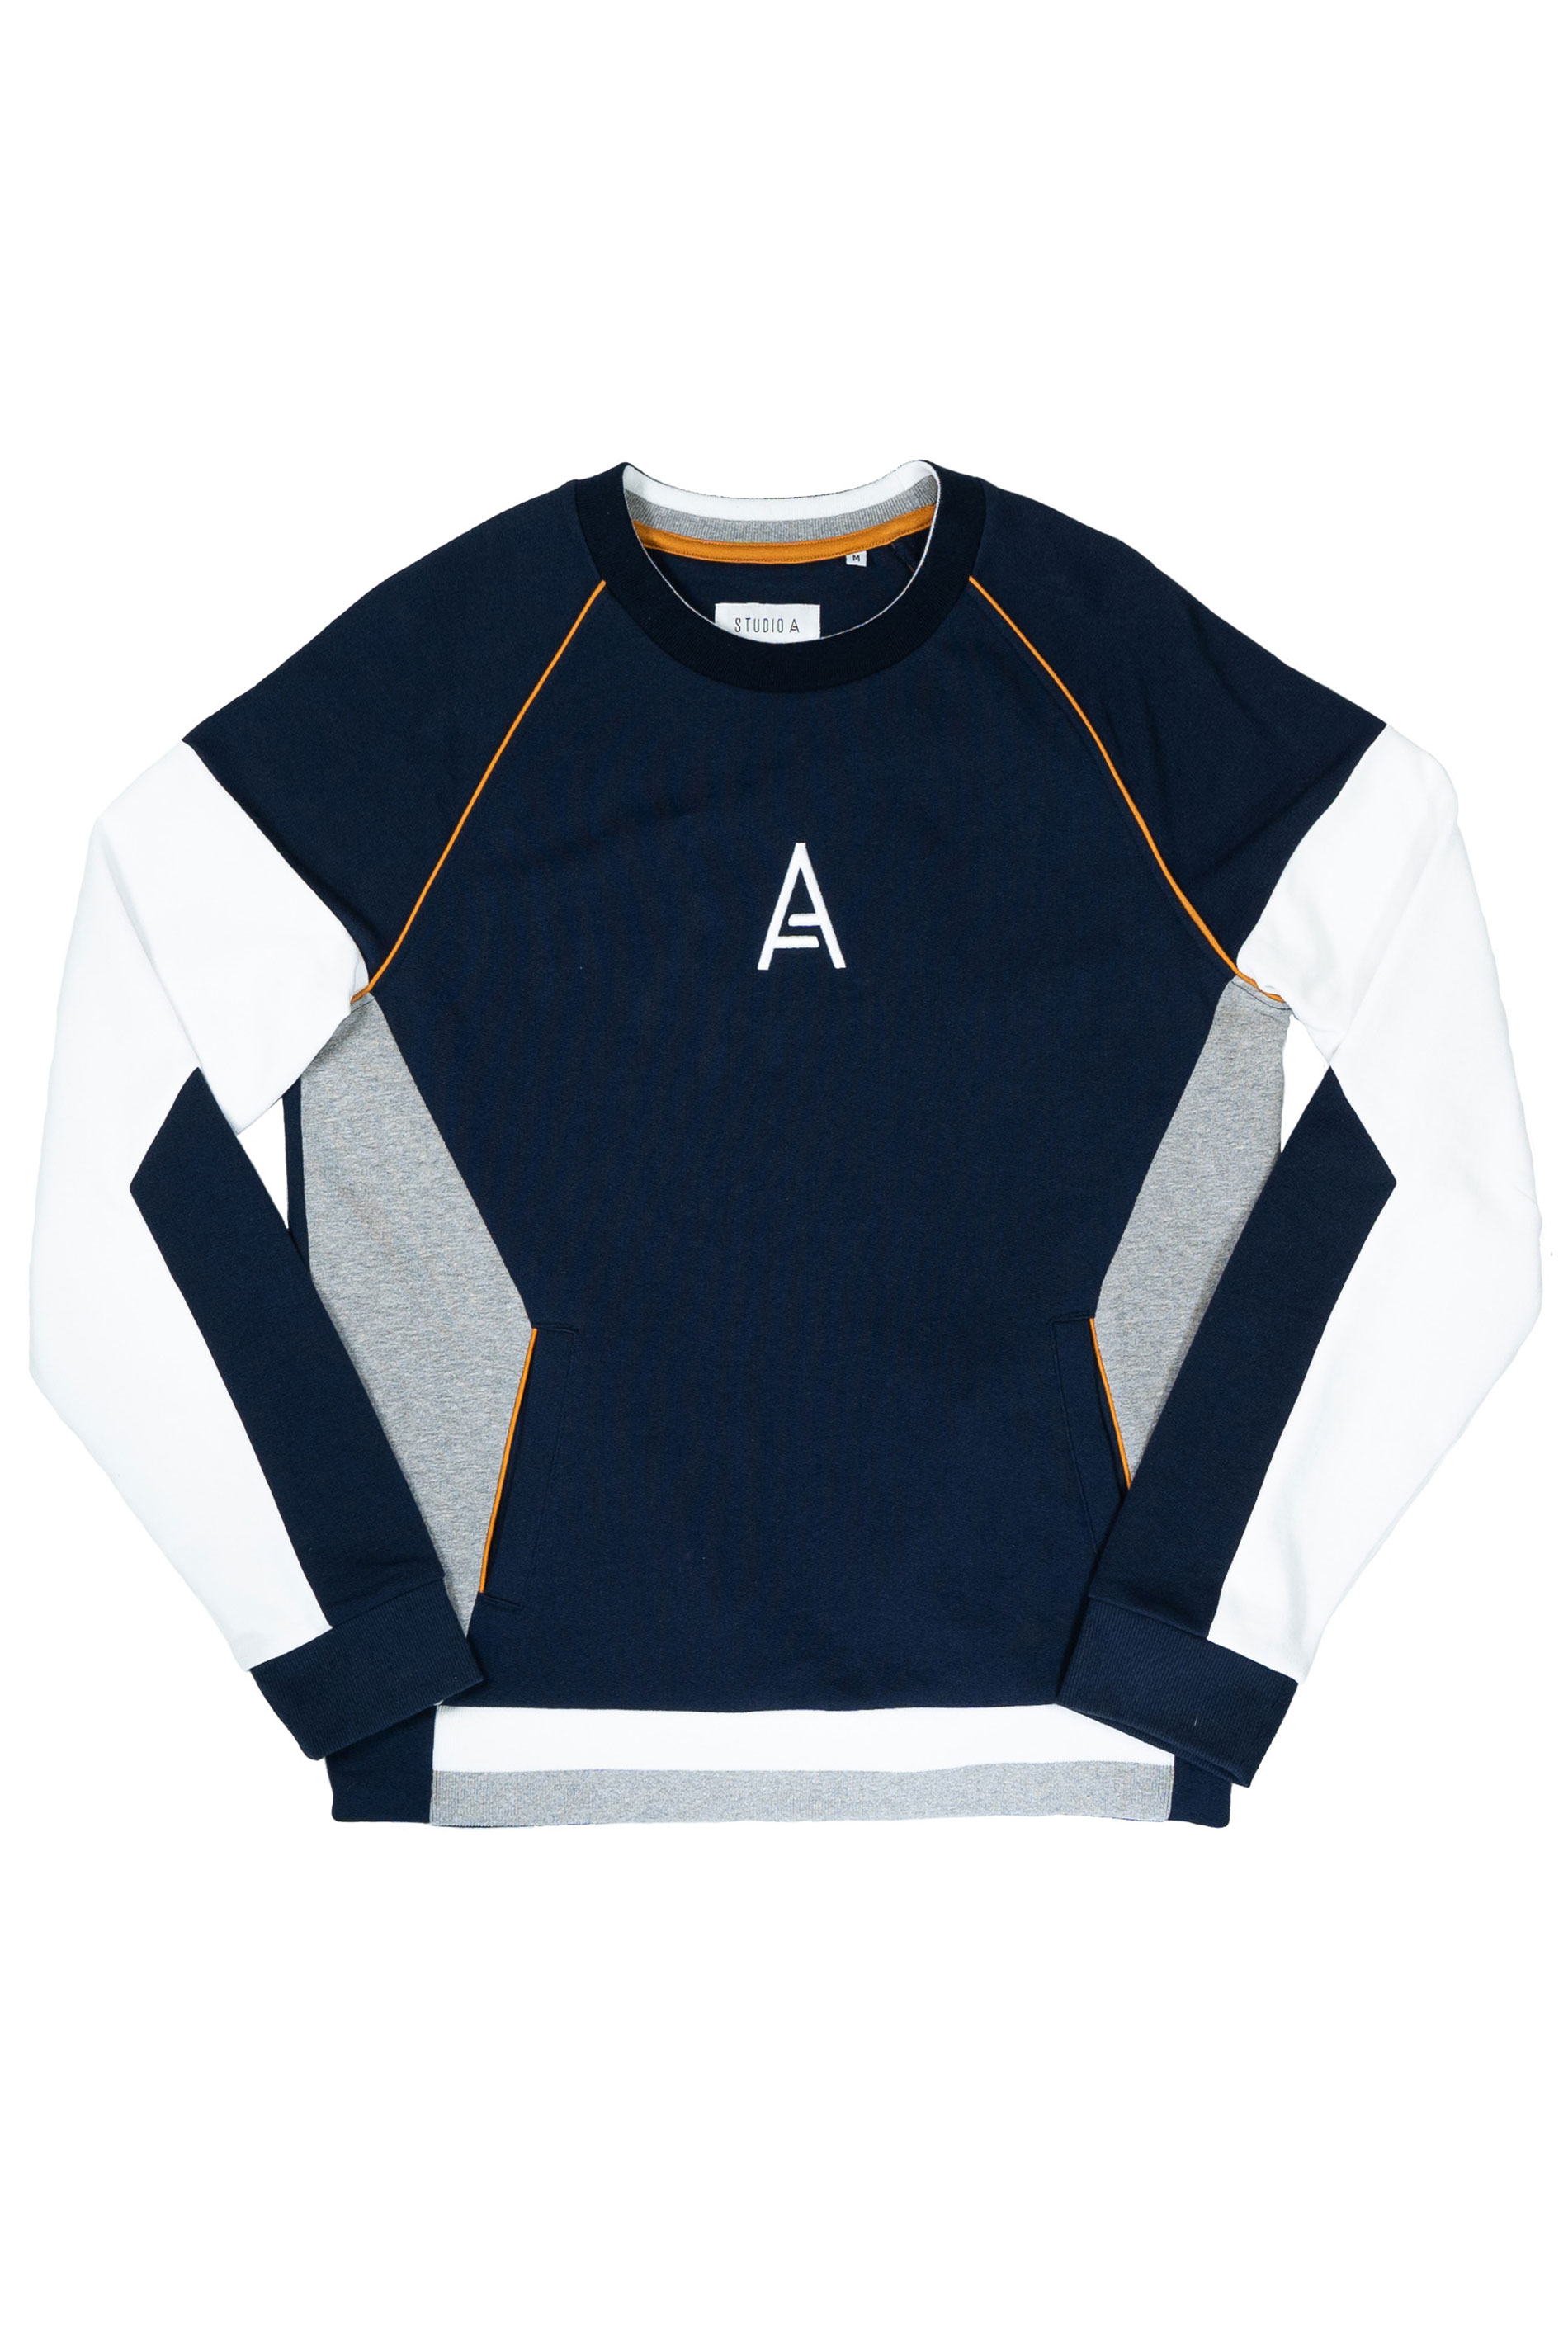 STUDIO A Navy & White Colour Block Sweatshirt